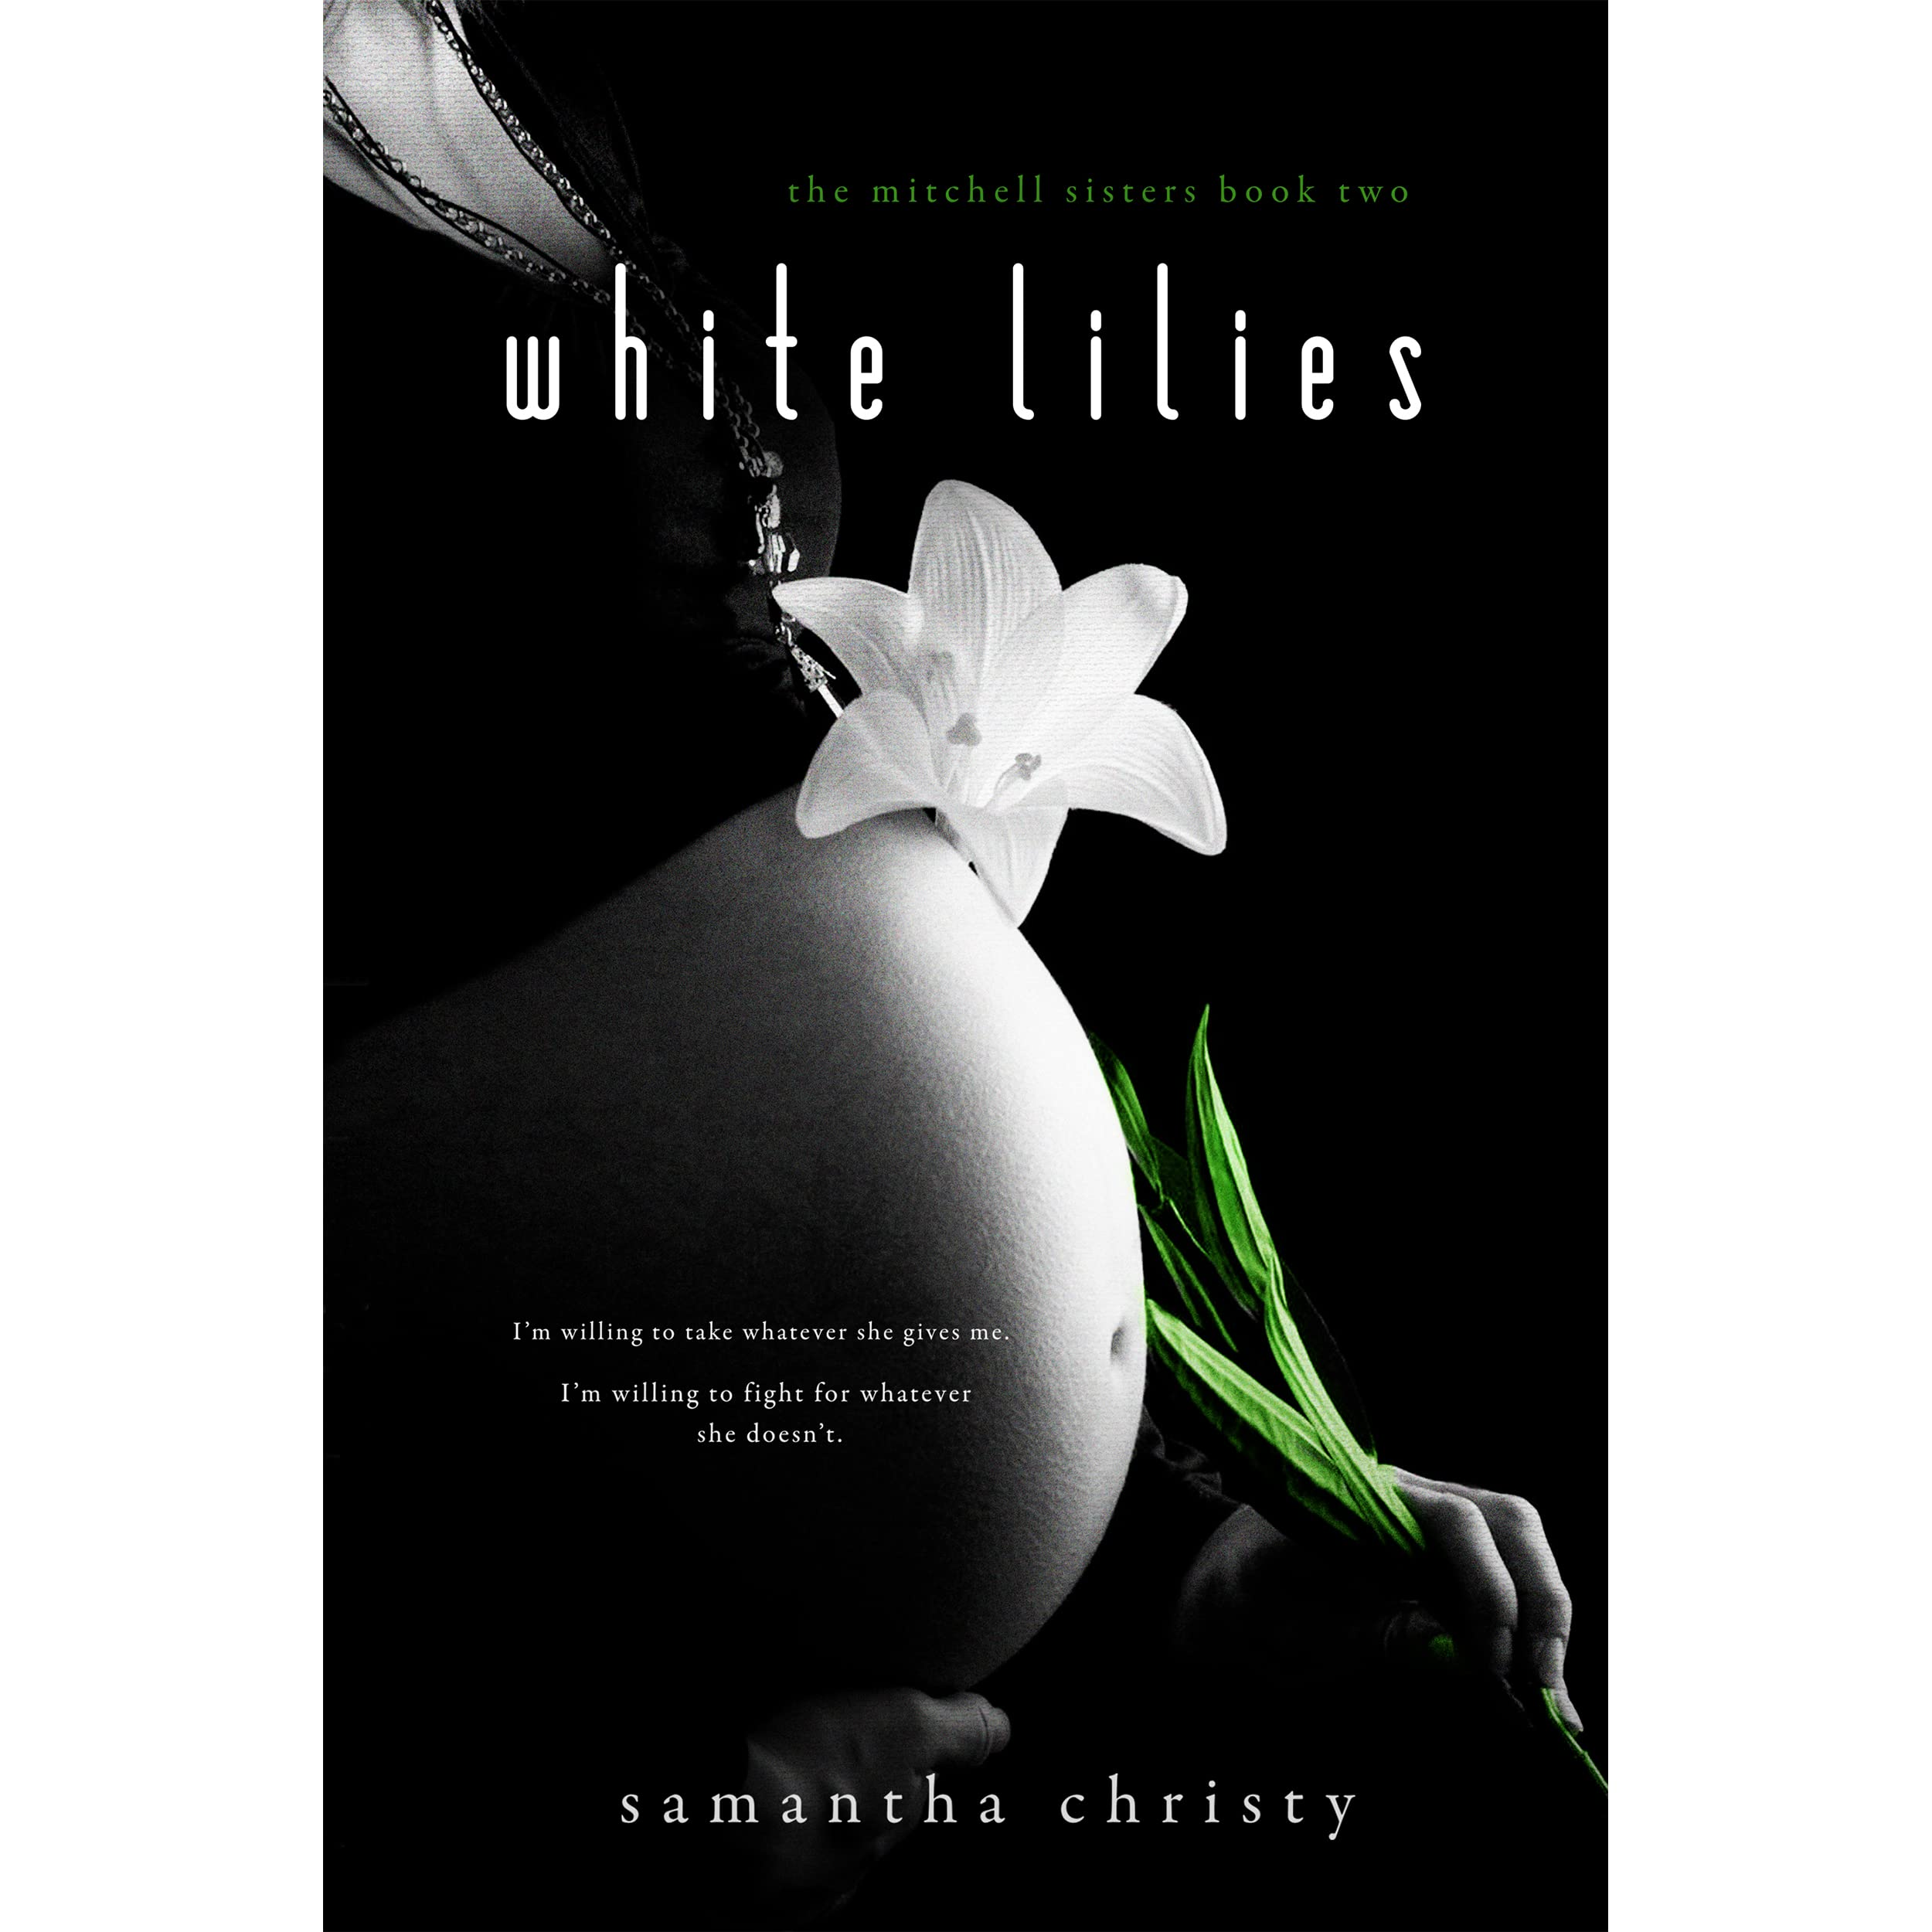 Como Descargar Libros En Goodreads White Lilies The Mitchell Sisters 2 By Samantha Christy